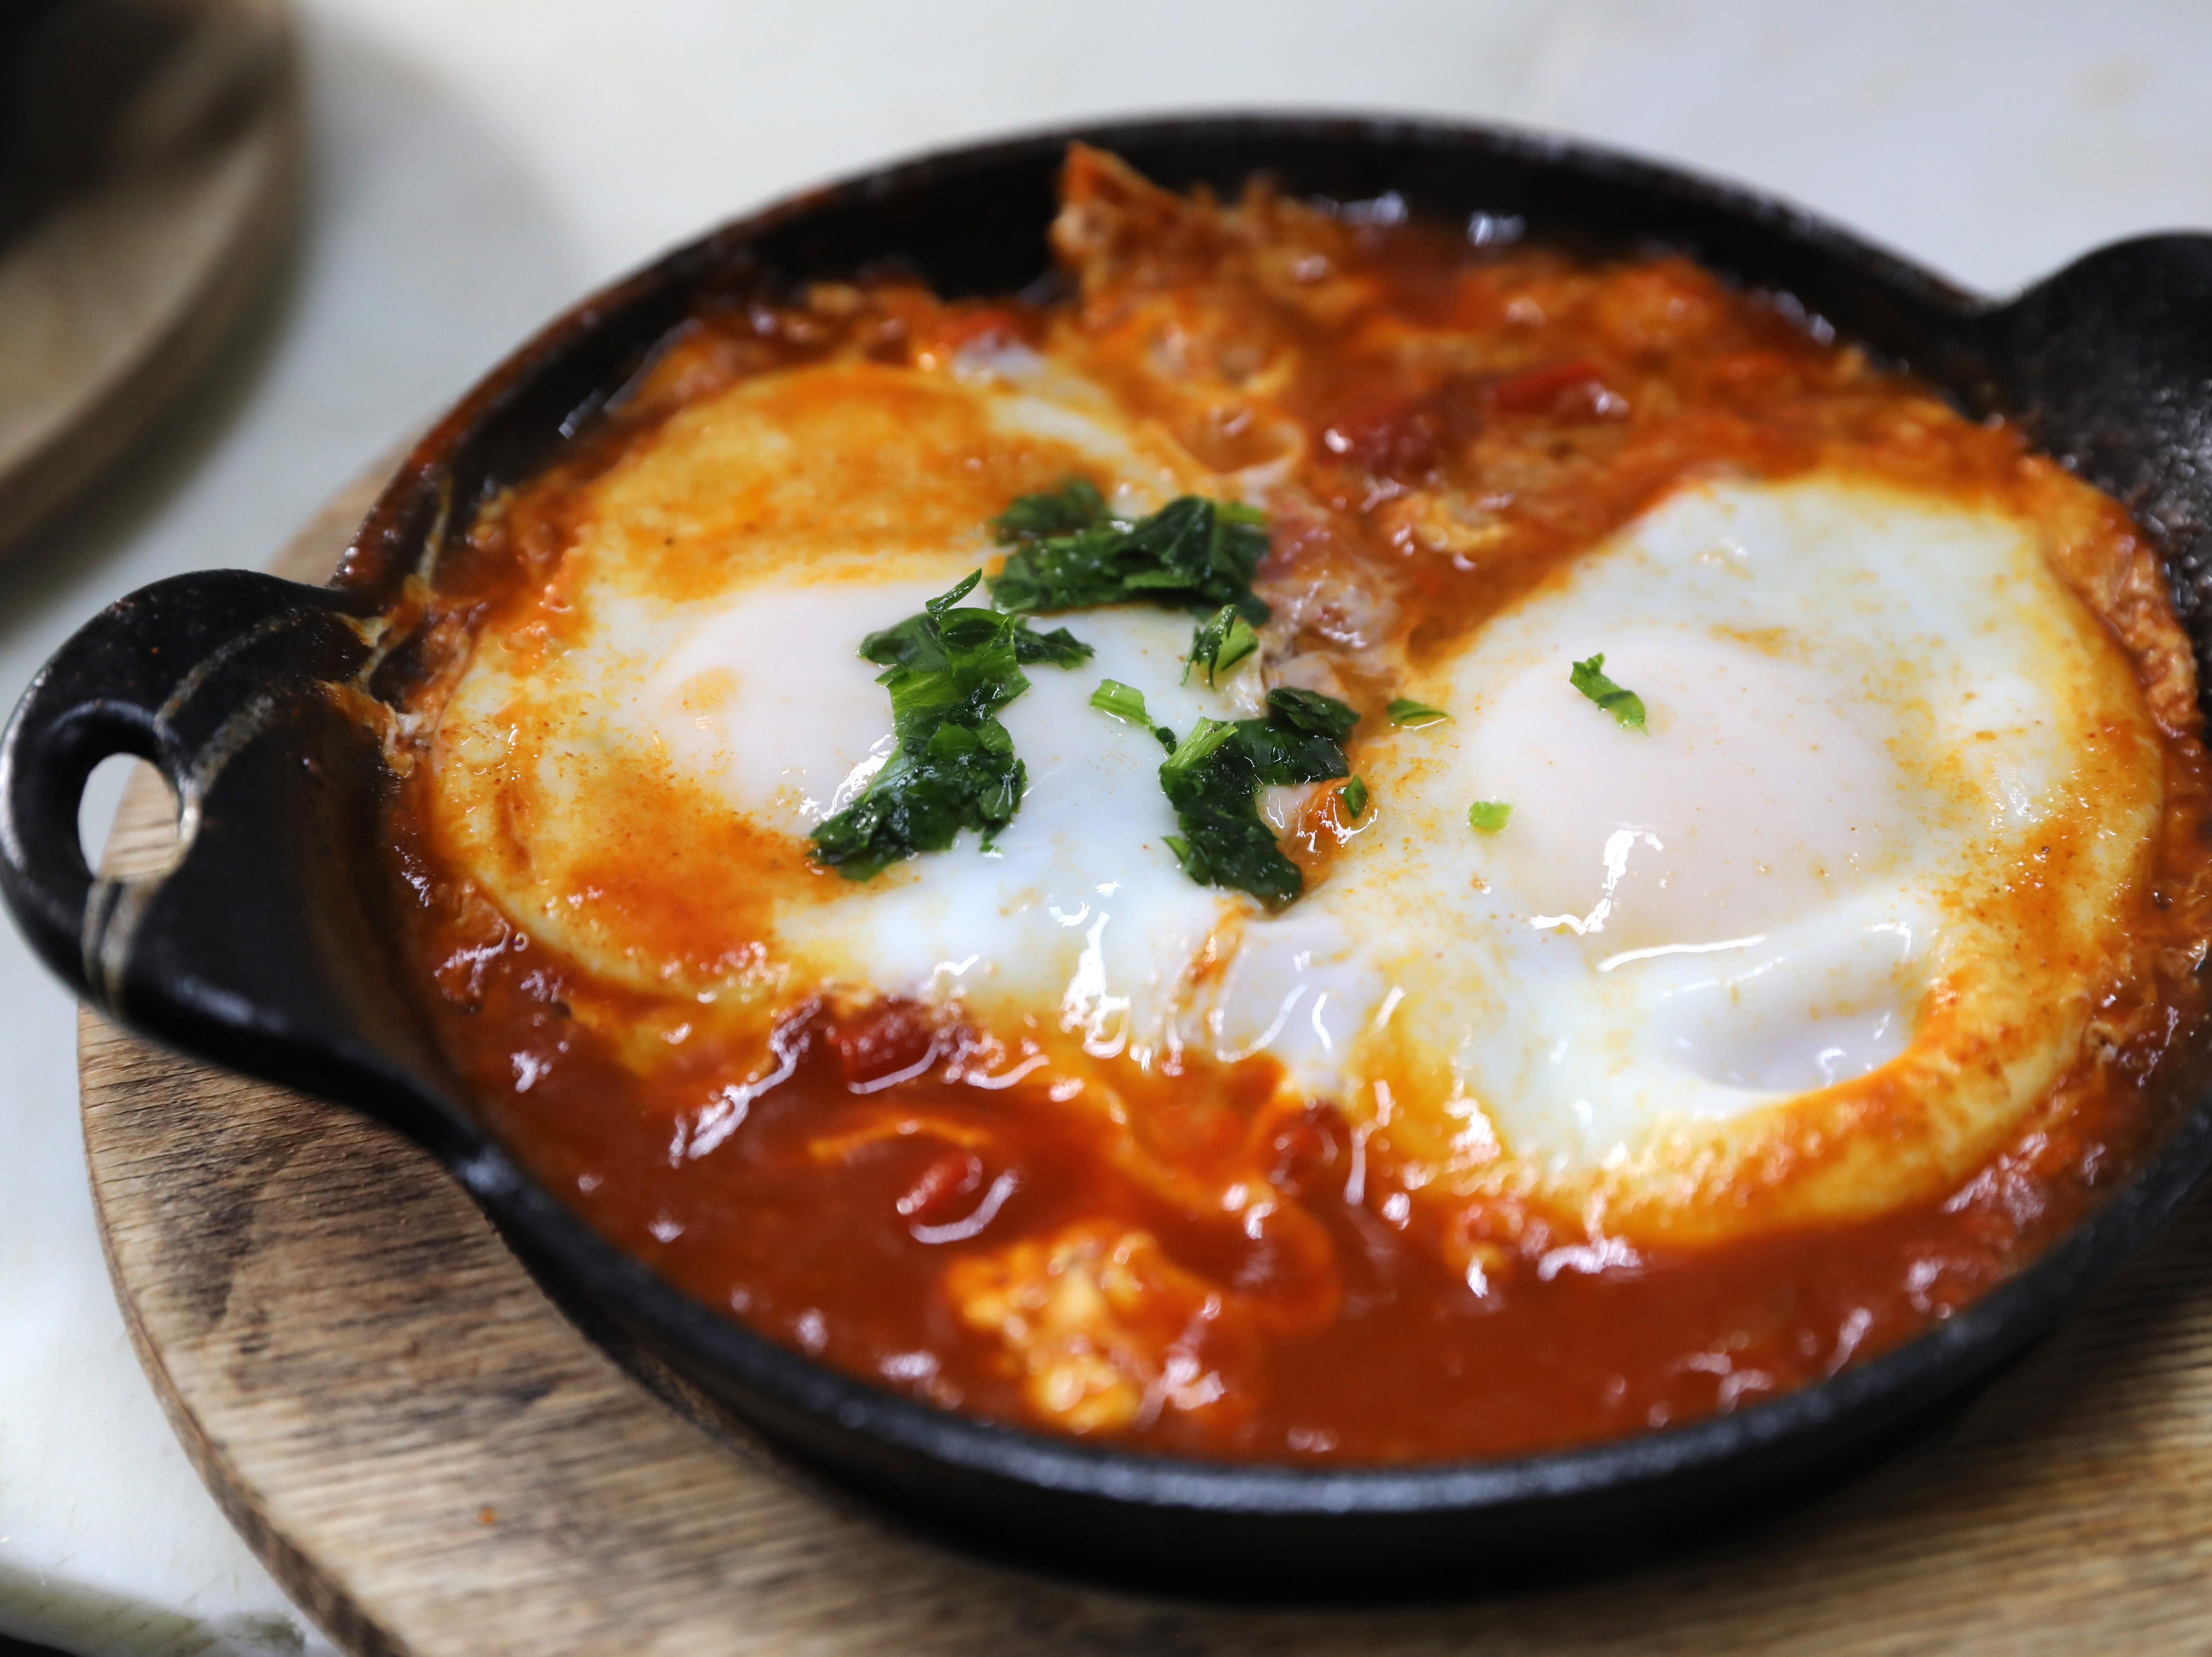 Shakshuka at Martine's Fine Bake Shoppe in Tuckahoe Nov. 29, 2018. The family bakery, which has a second location in Scarsdale, is celebrating their 10th anniversary in business.